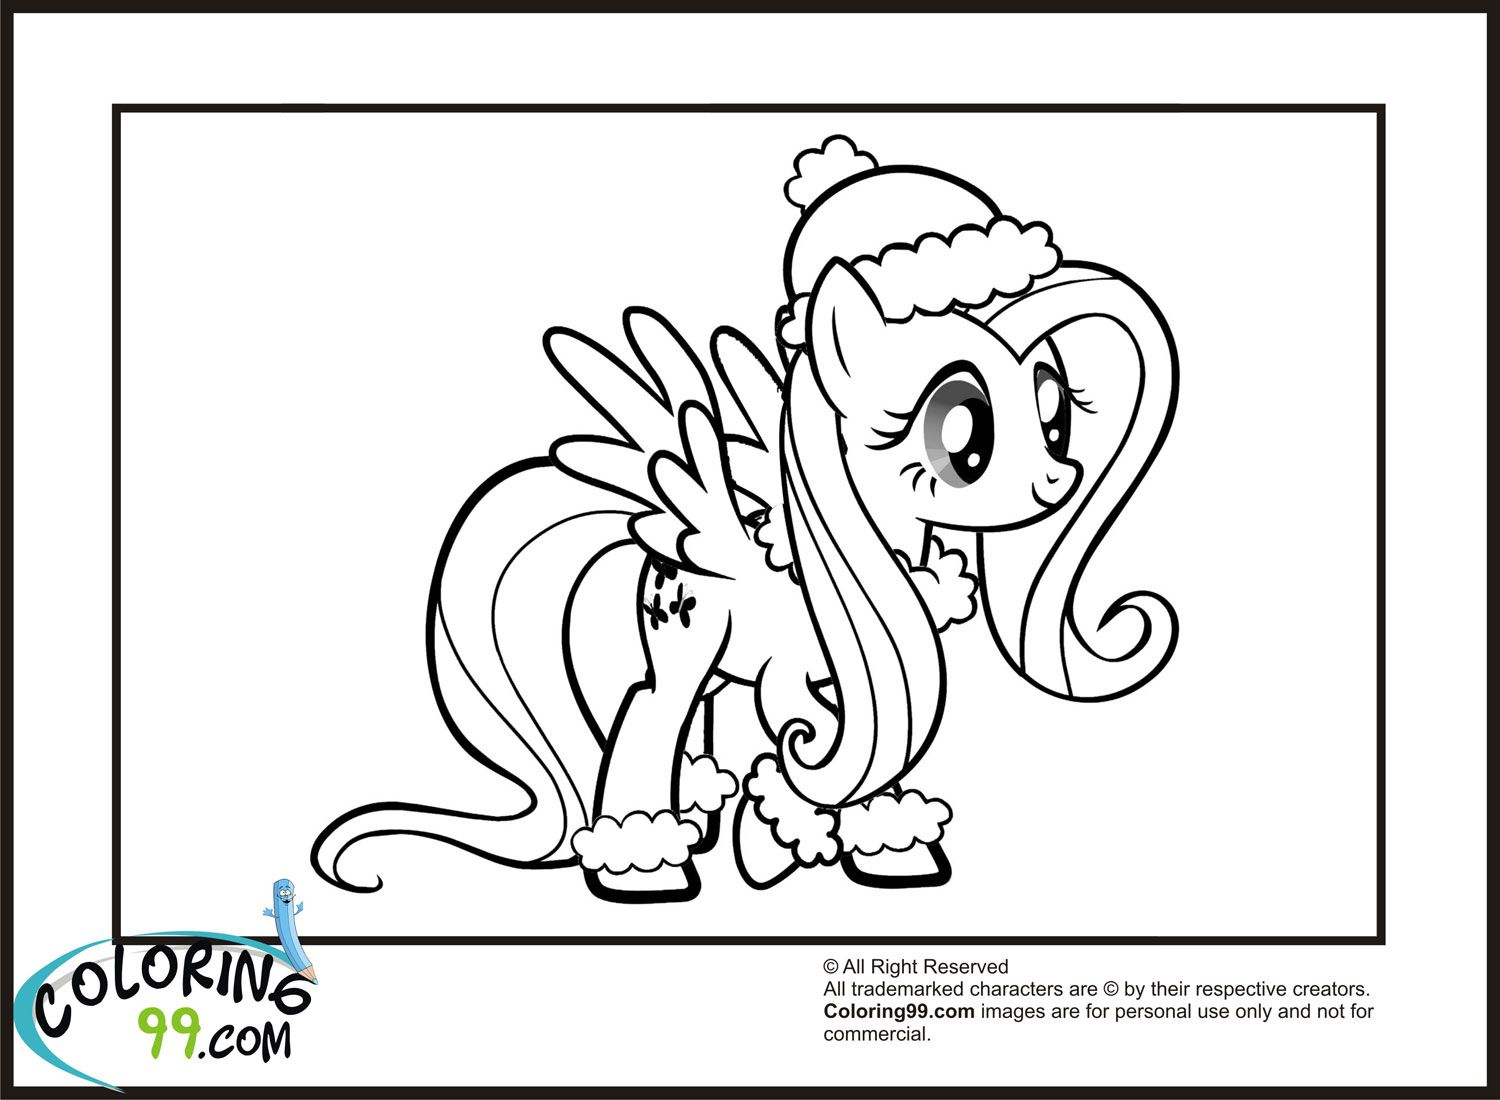 Coloring99 My Little Pony Fluttershy Coloring Pages